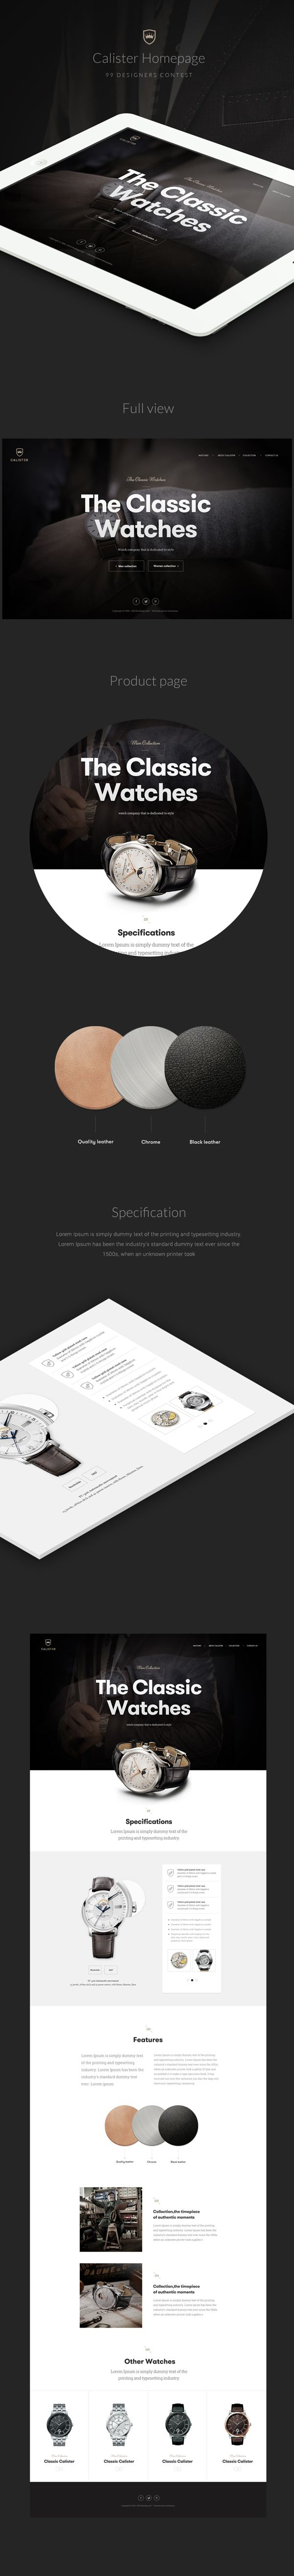 http://www.webdesignserved.com/gallery/Calister-watches/18686163